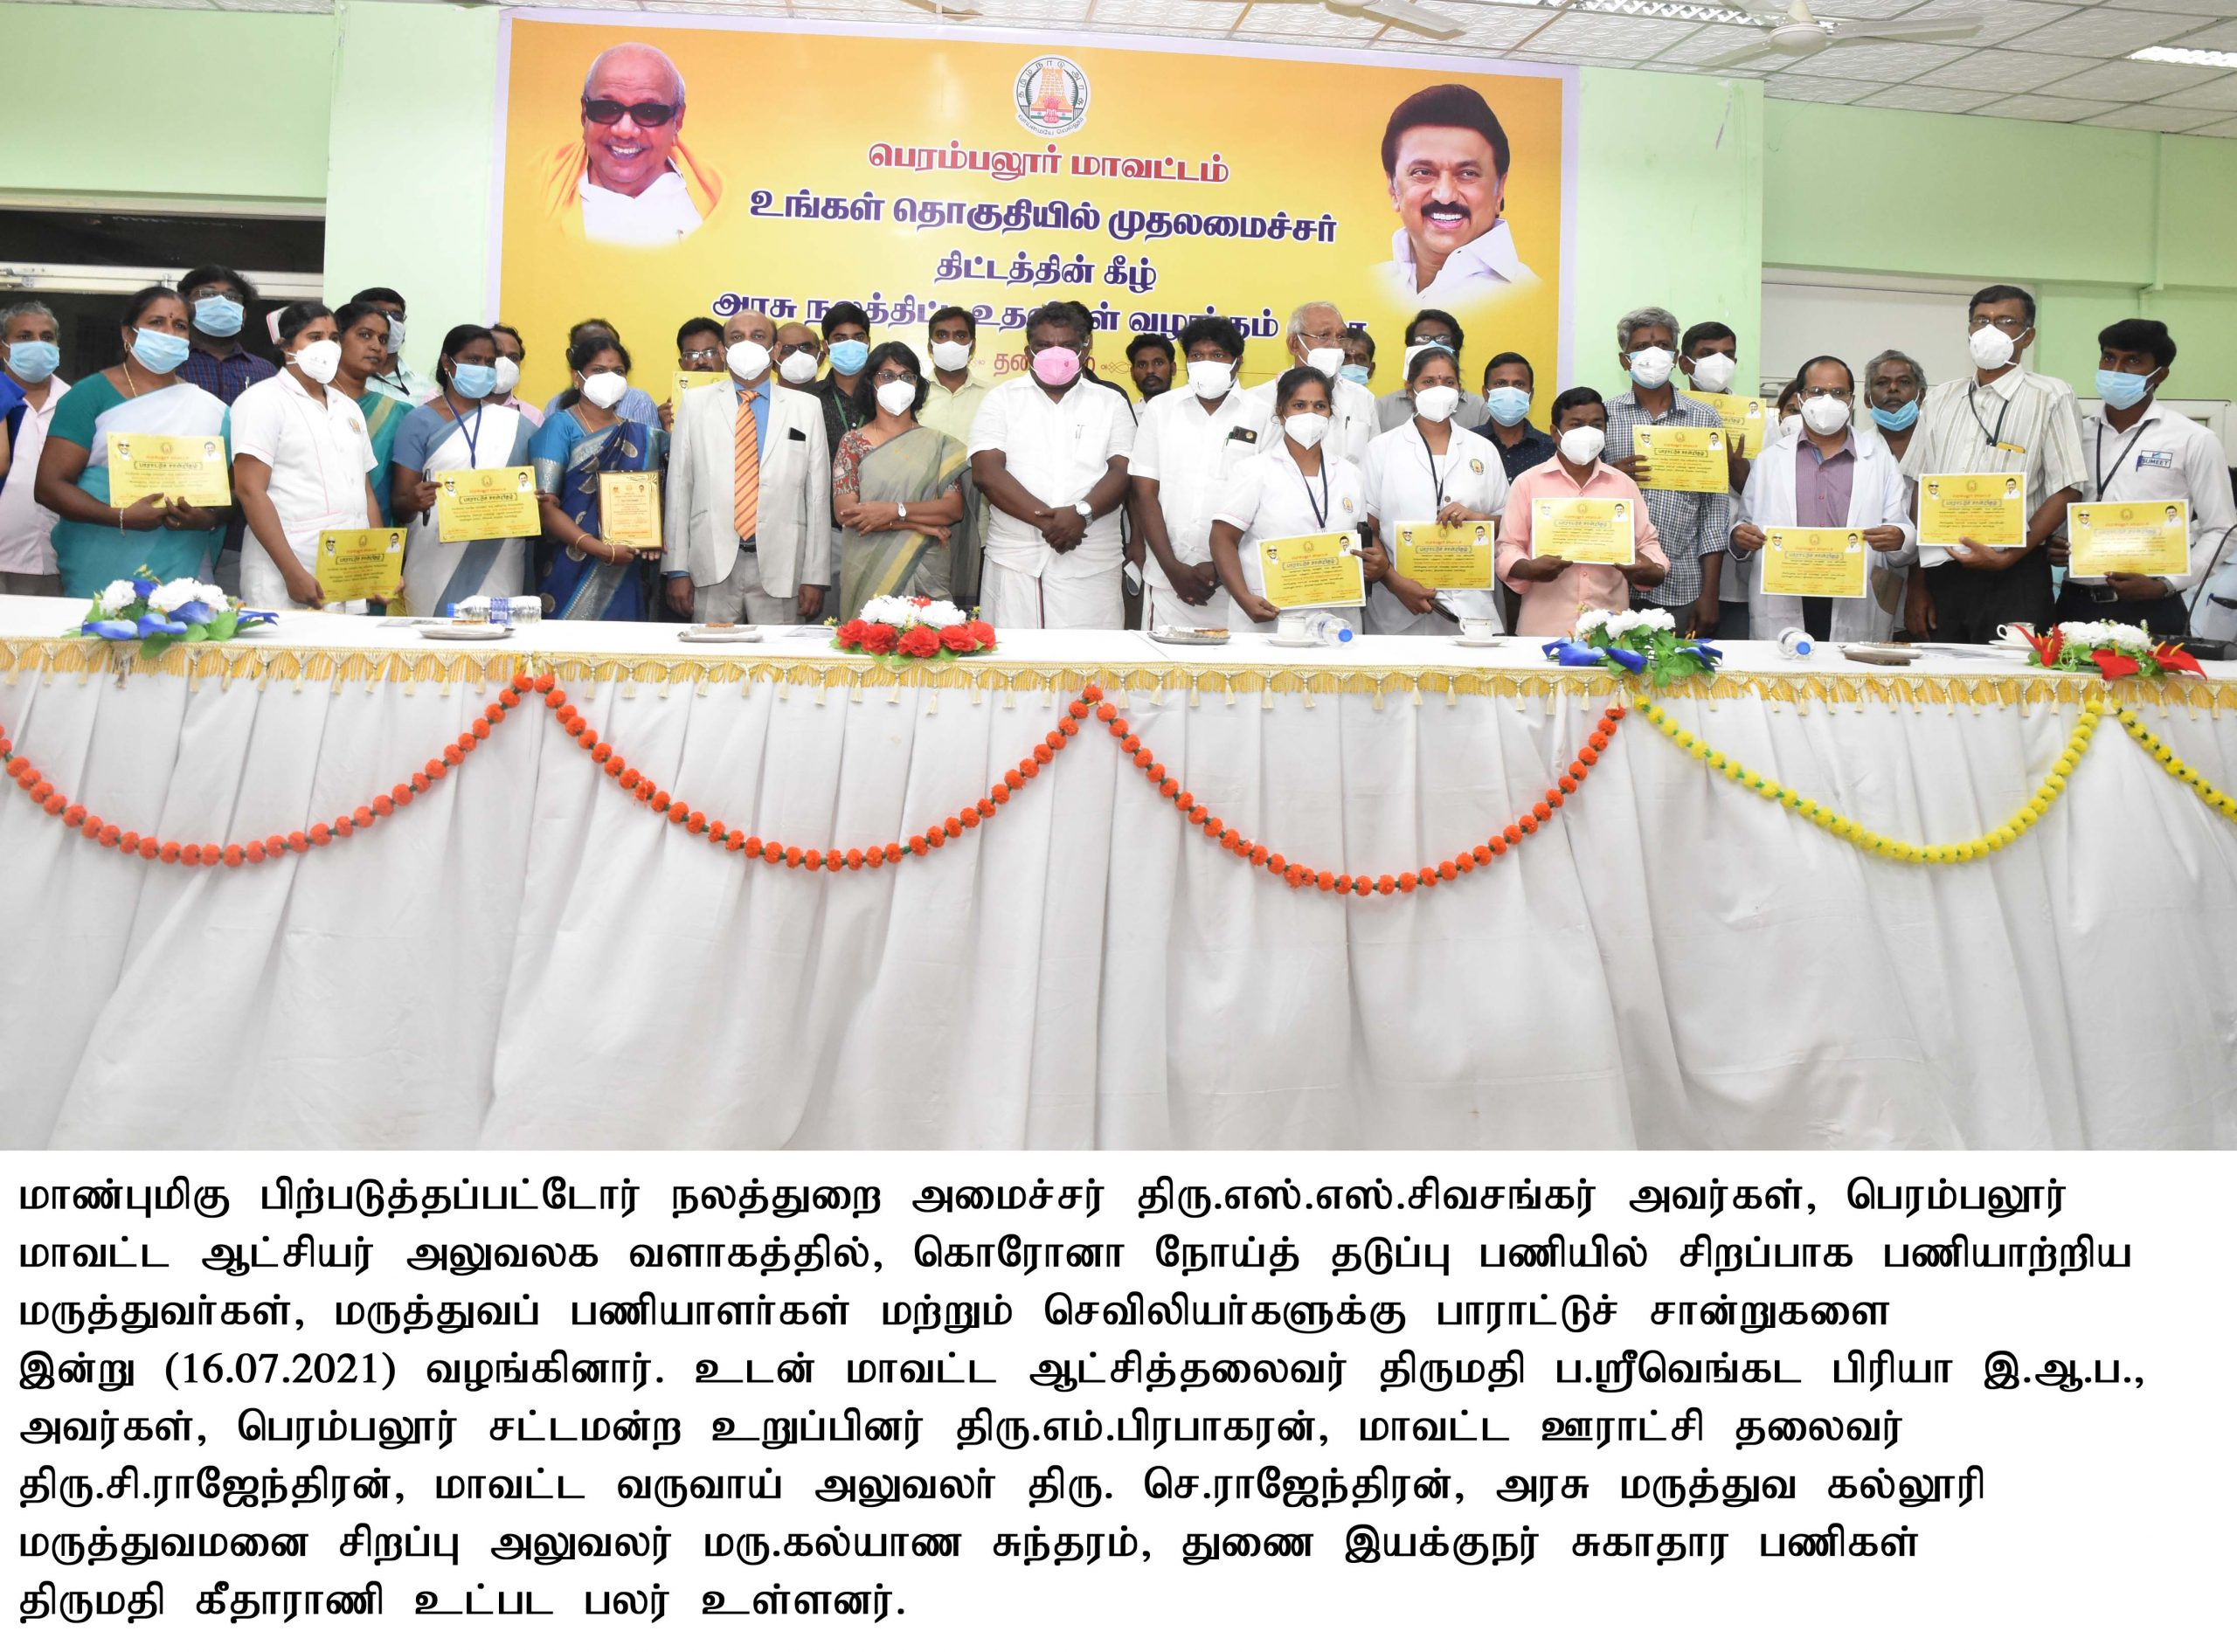 Distribution of Welfare assistance worth Rs.10.34 crores to 431 beneficiaries under the Ungal Thogudhiyil Muthalamaichar Scheme- 16.07.2021